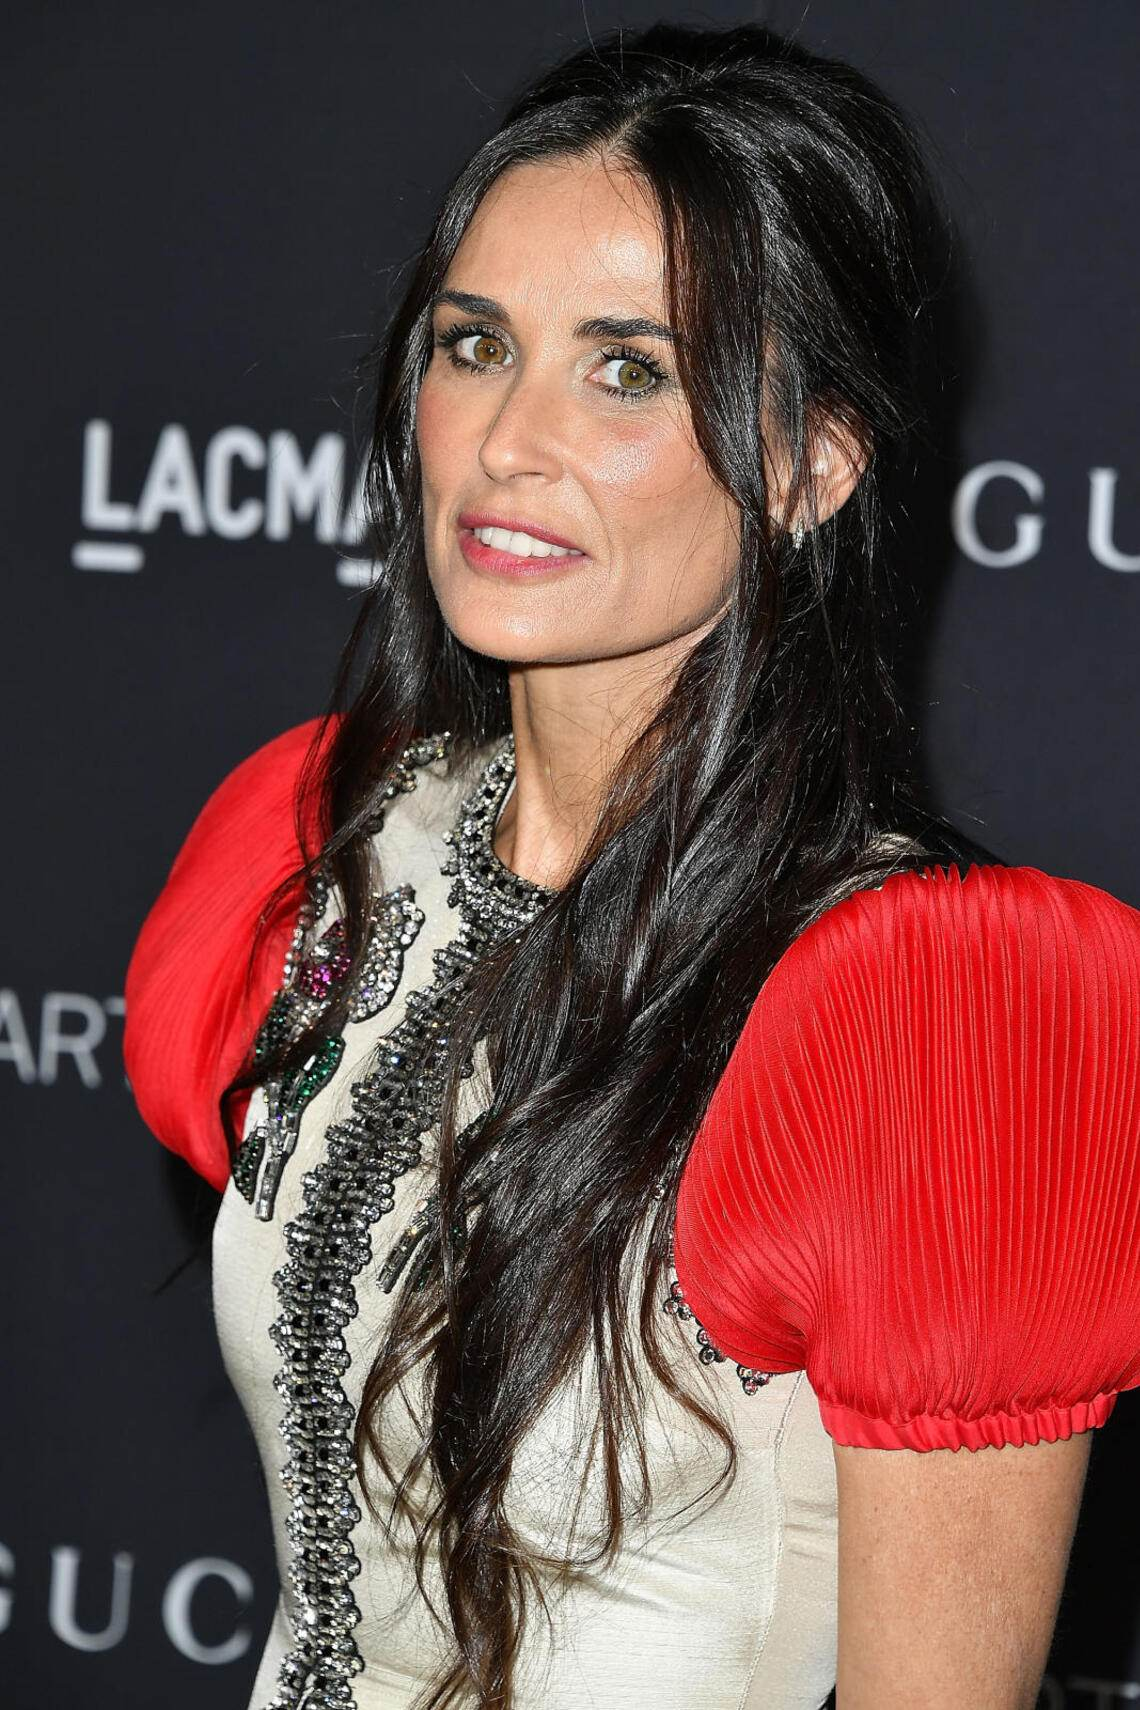 LOS ANGELES, CA - OCTOBER 29: Demi Moore arrives at the 2016 LACMA Art + Film Gala Honoring Robert Irwin And Kathryn Bigelow Presented By Gucci at LACMA on October 29, 2016 in Los Angeles, California. (Photo by Steve Granitz/WireImage)